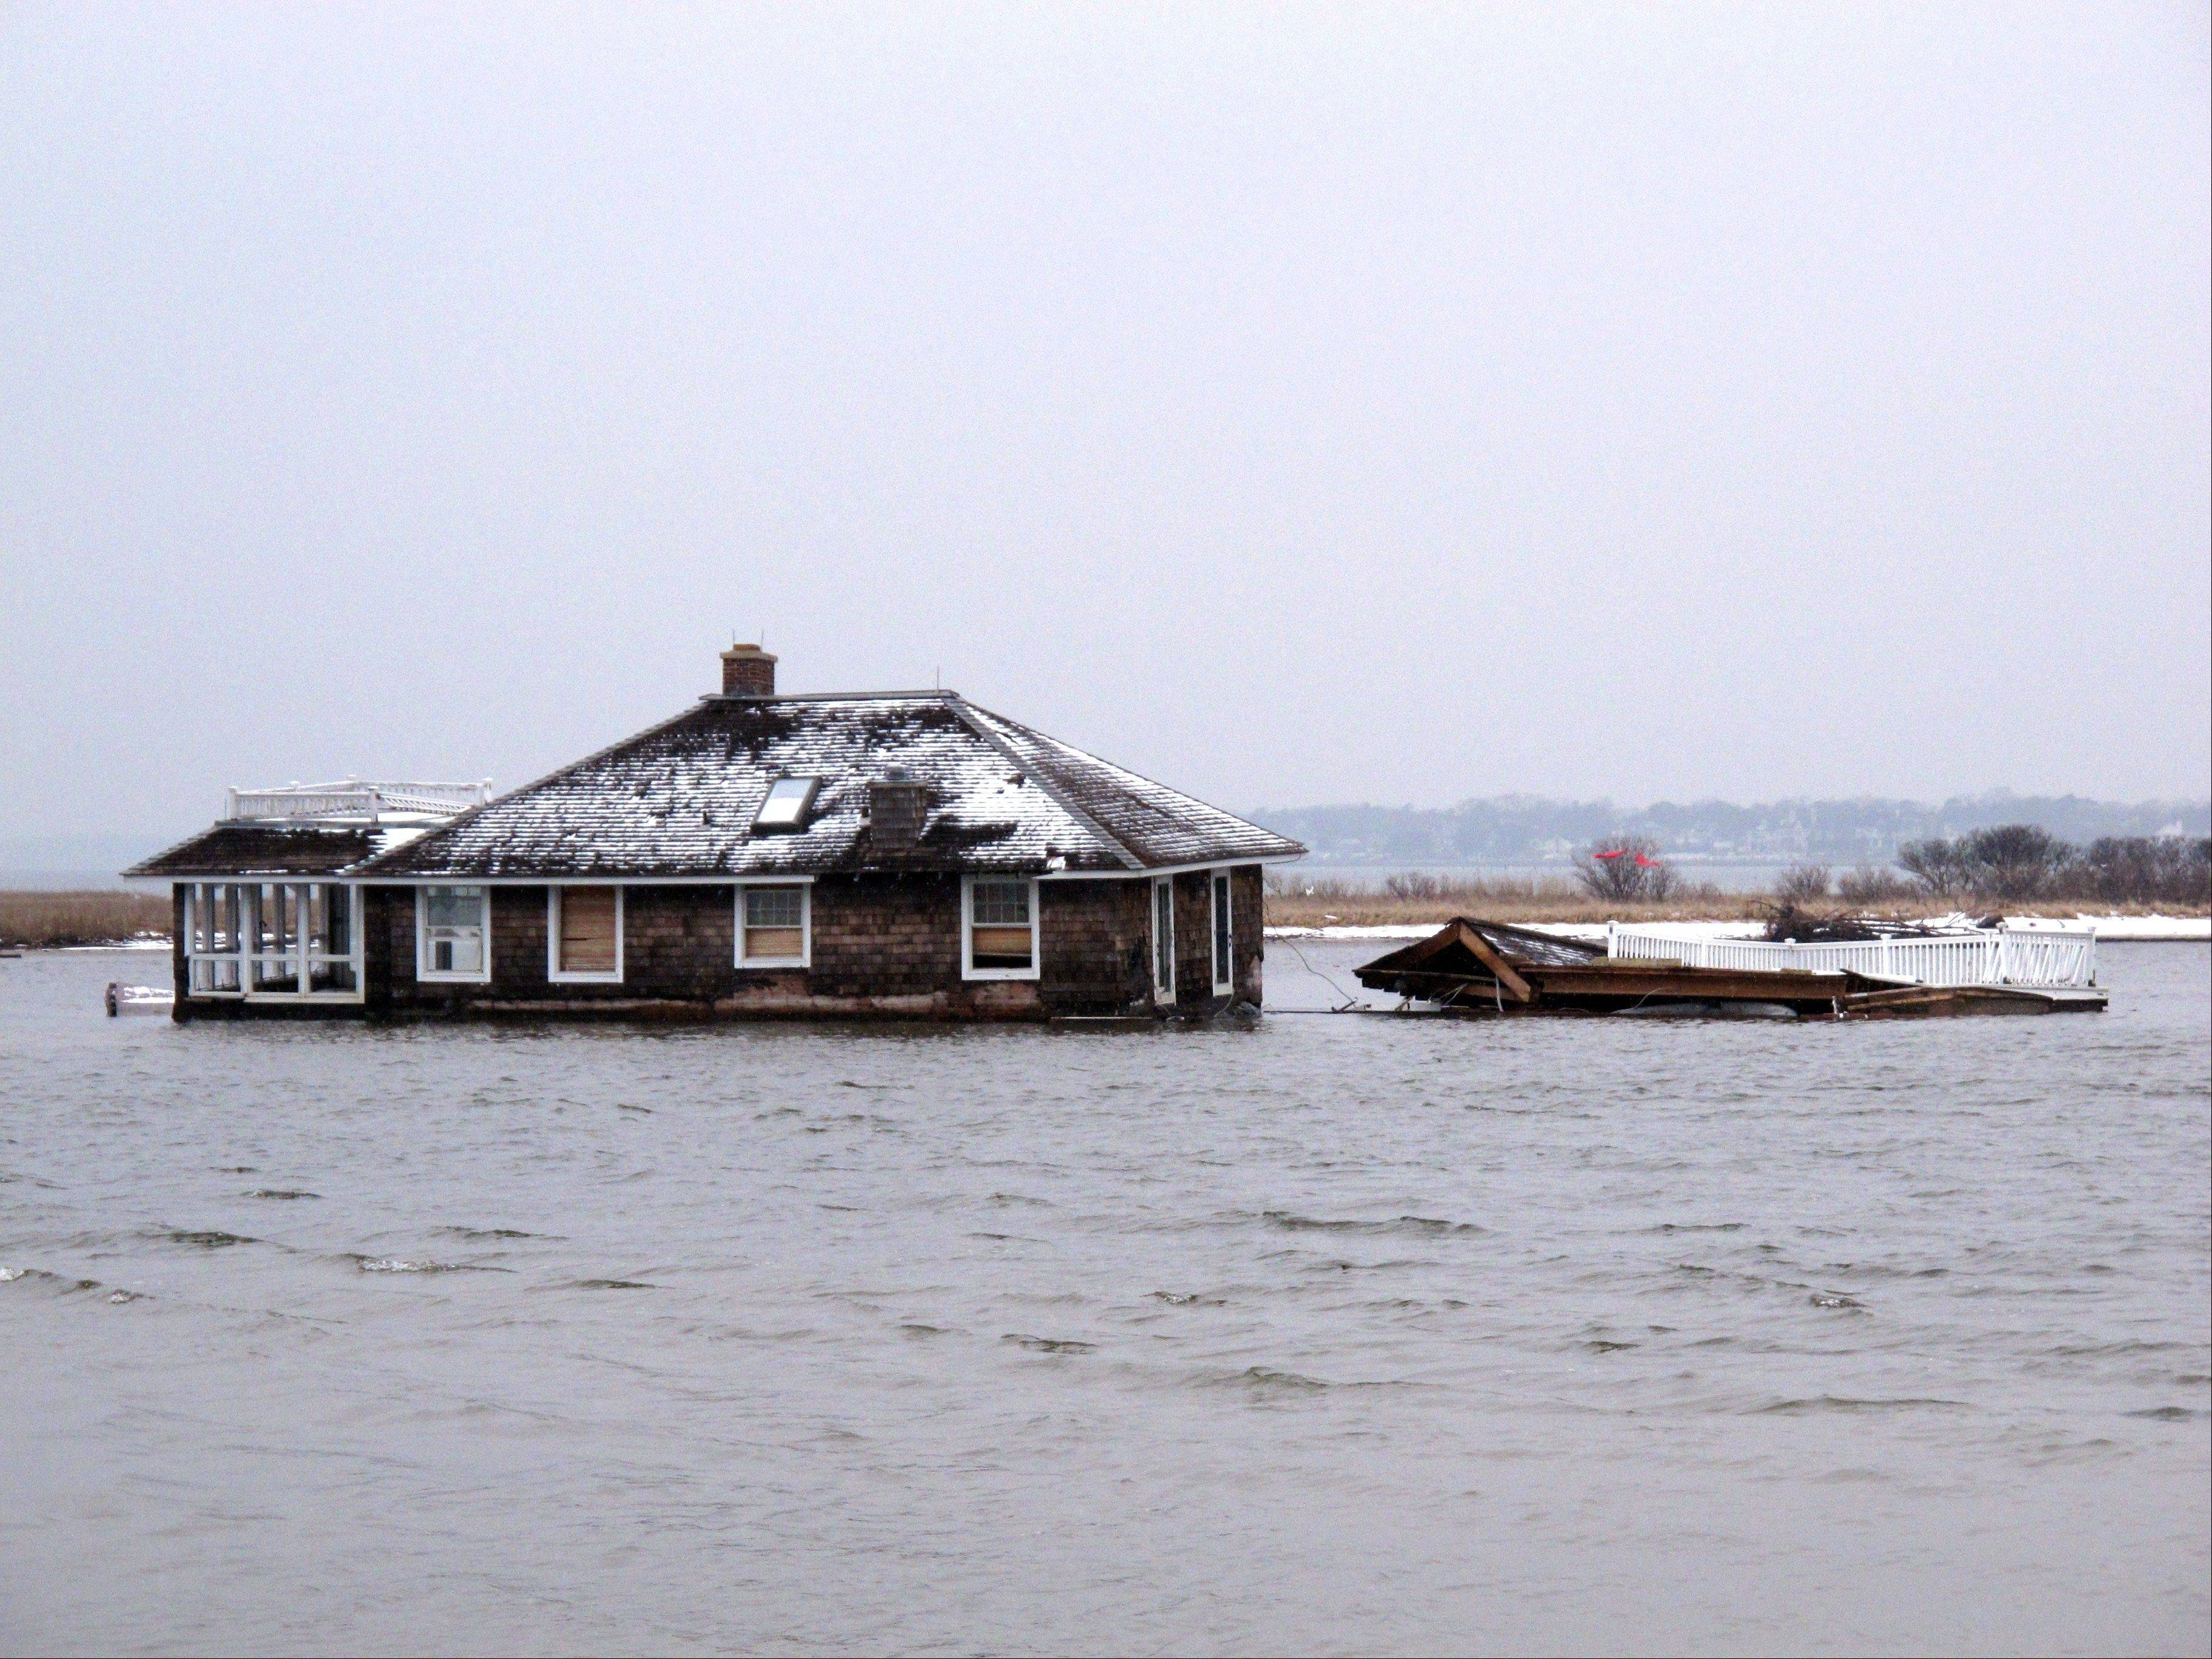 States hit hard by Superstorm Sandy are gearing up to remove tons of debris from waterways, including houses, vehicles, sunken boats, furniture, pieces of piers, decks and bulkheads.